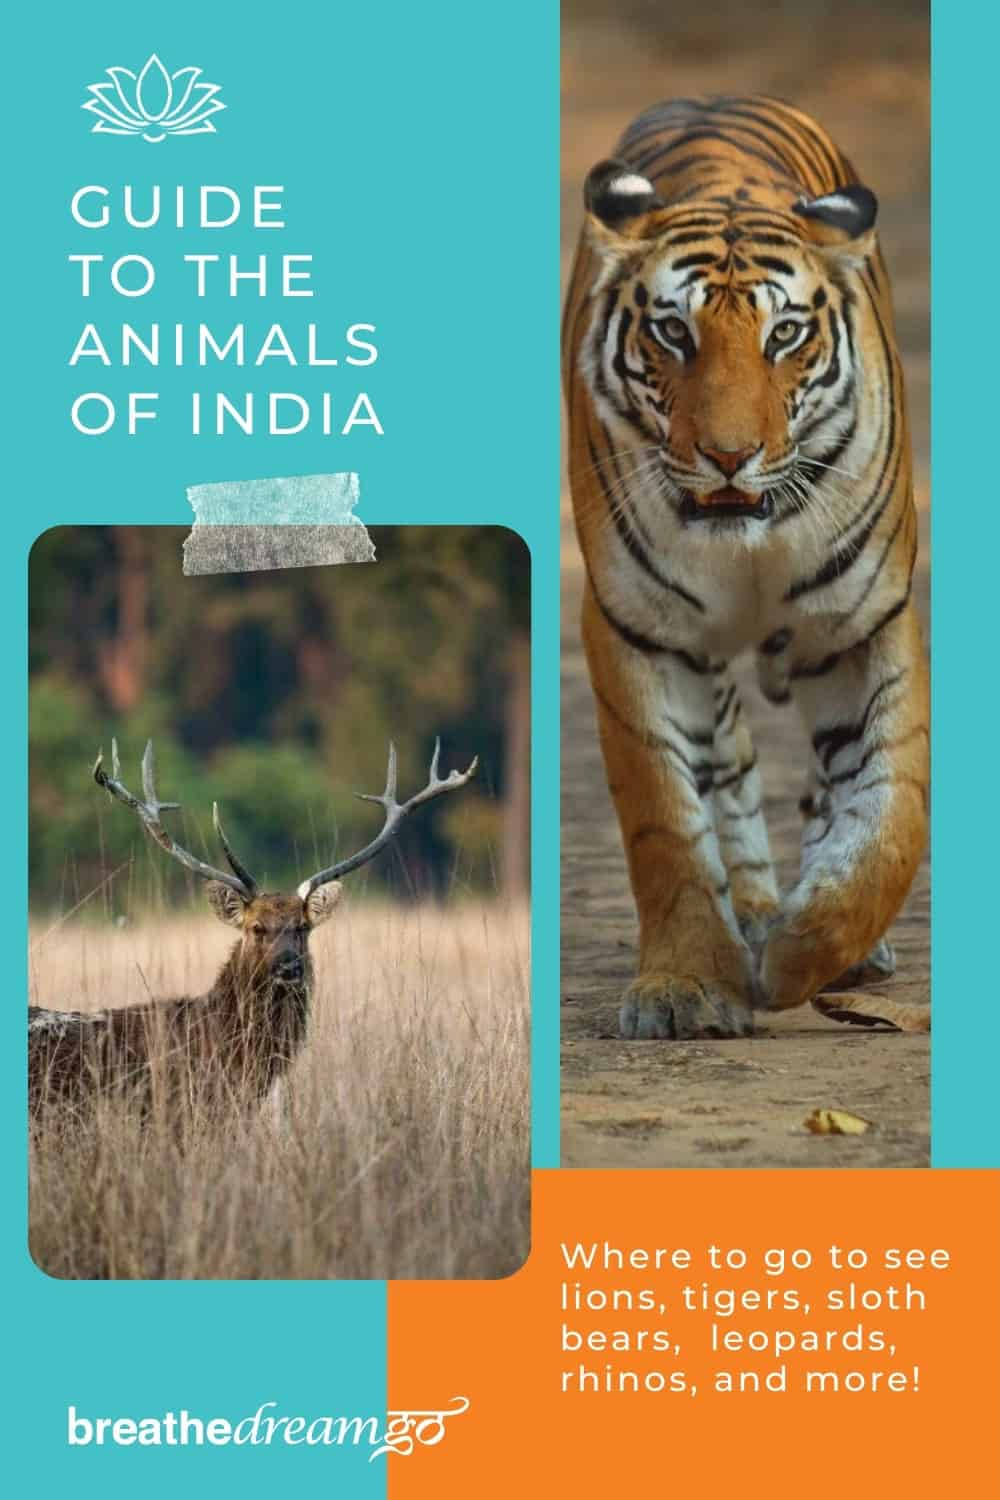 Guide to the animals of India